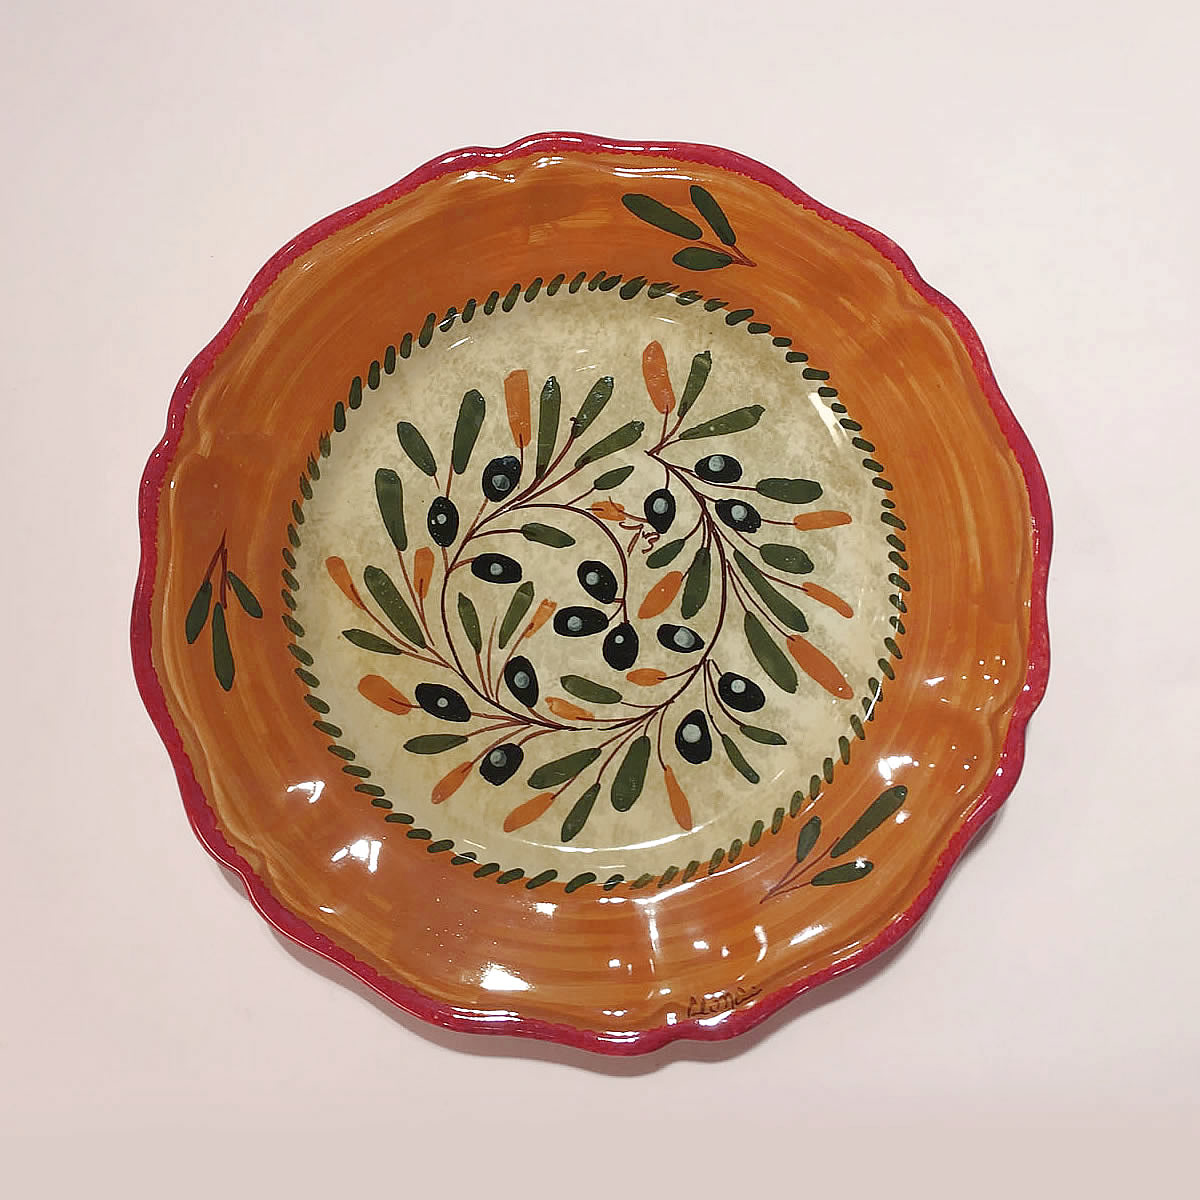 The finest hand-made hand-painted pottery and italian ceramic PLATES ... & Hand painted Ceramic plates dinnerware sets ol110 28